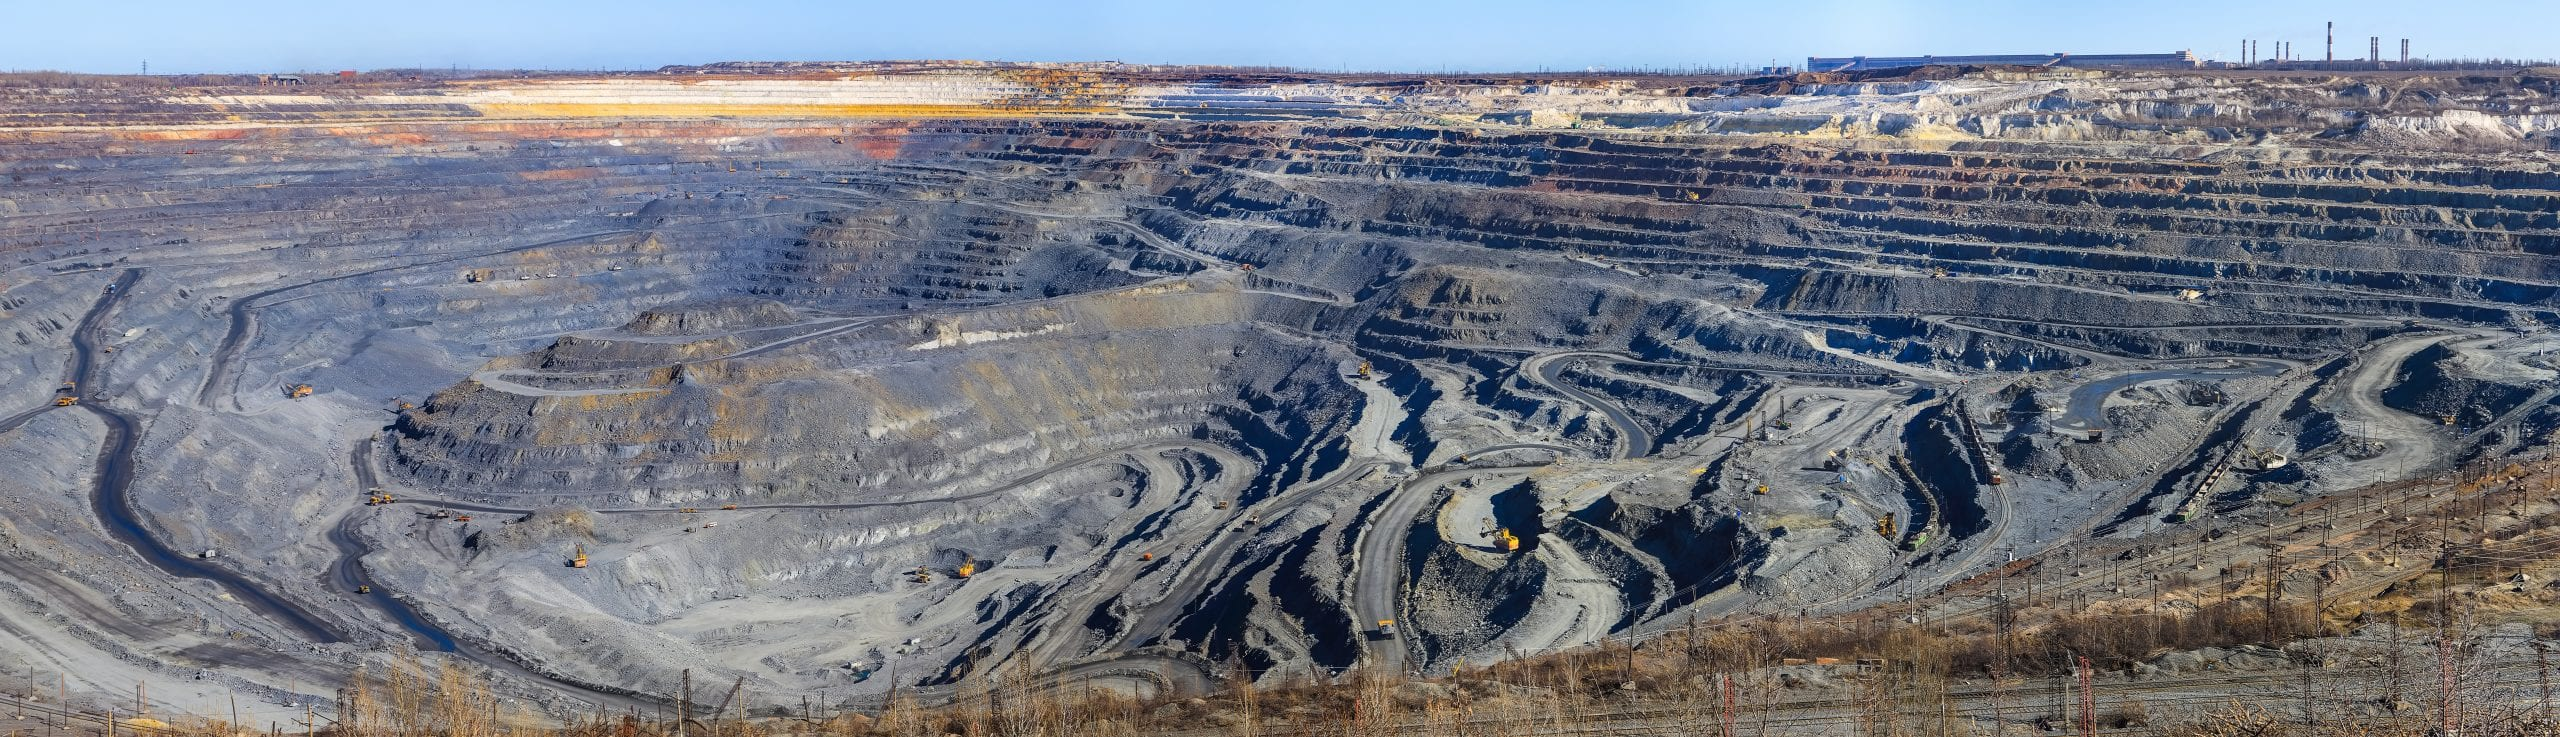 panorama of a great career iron ore mining